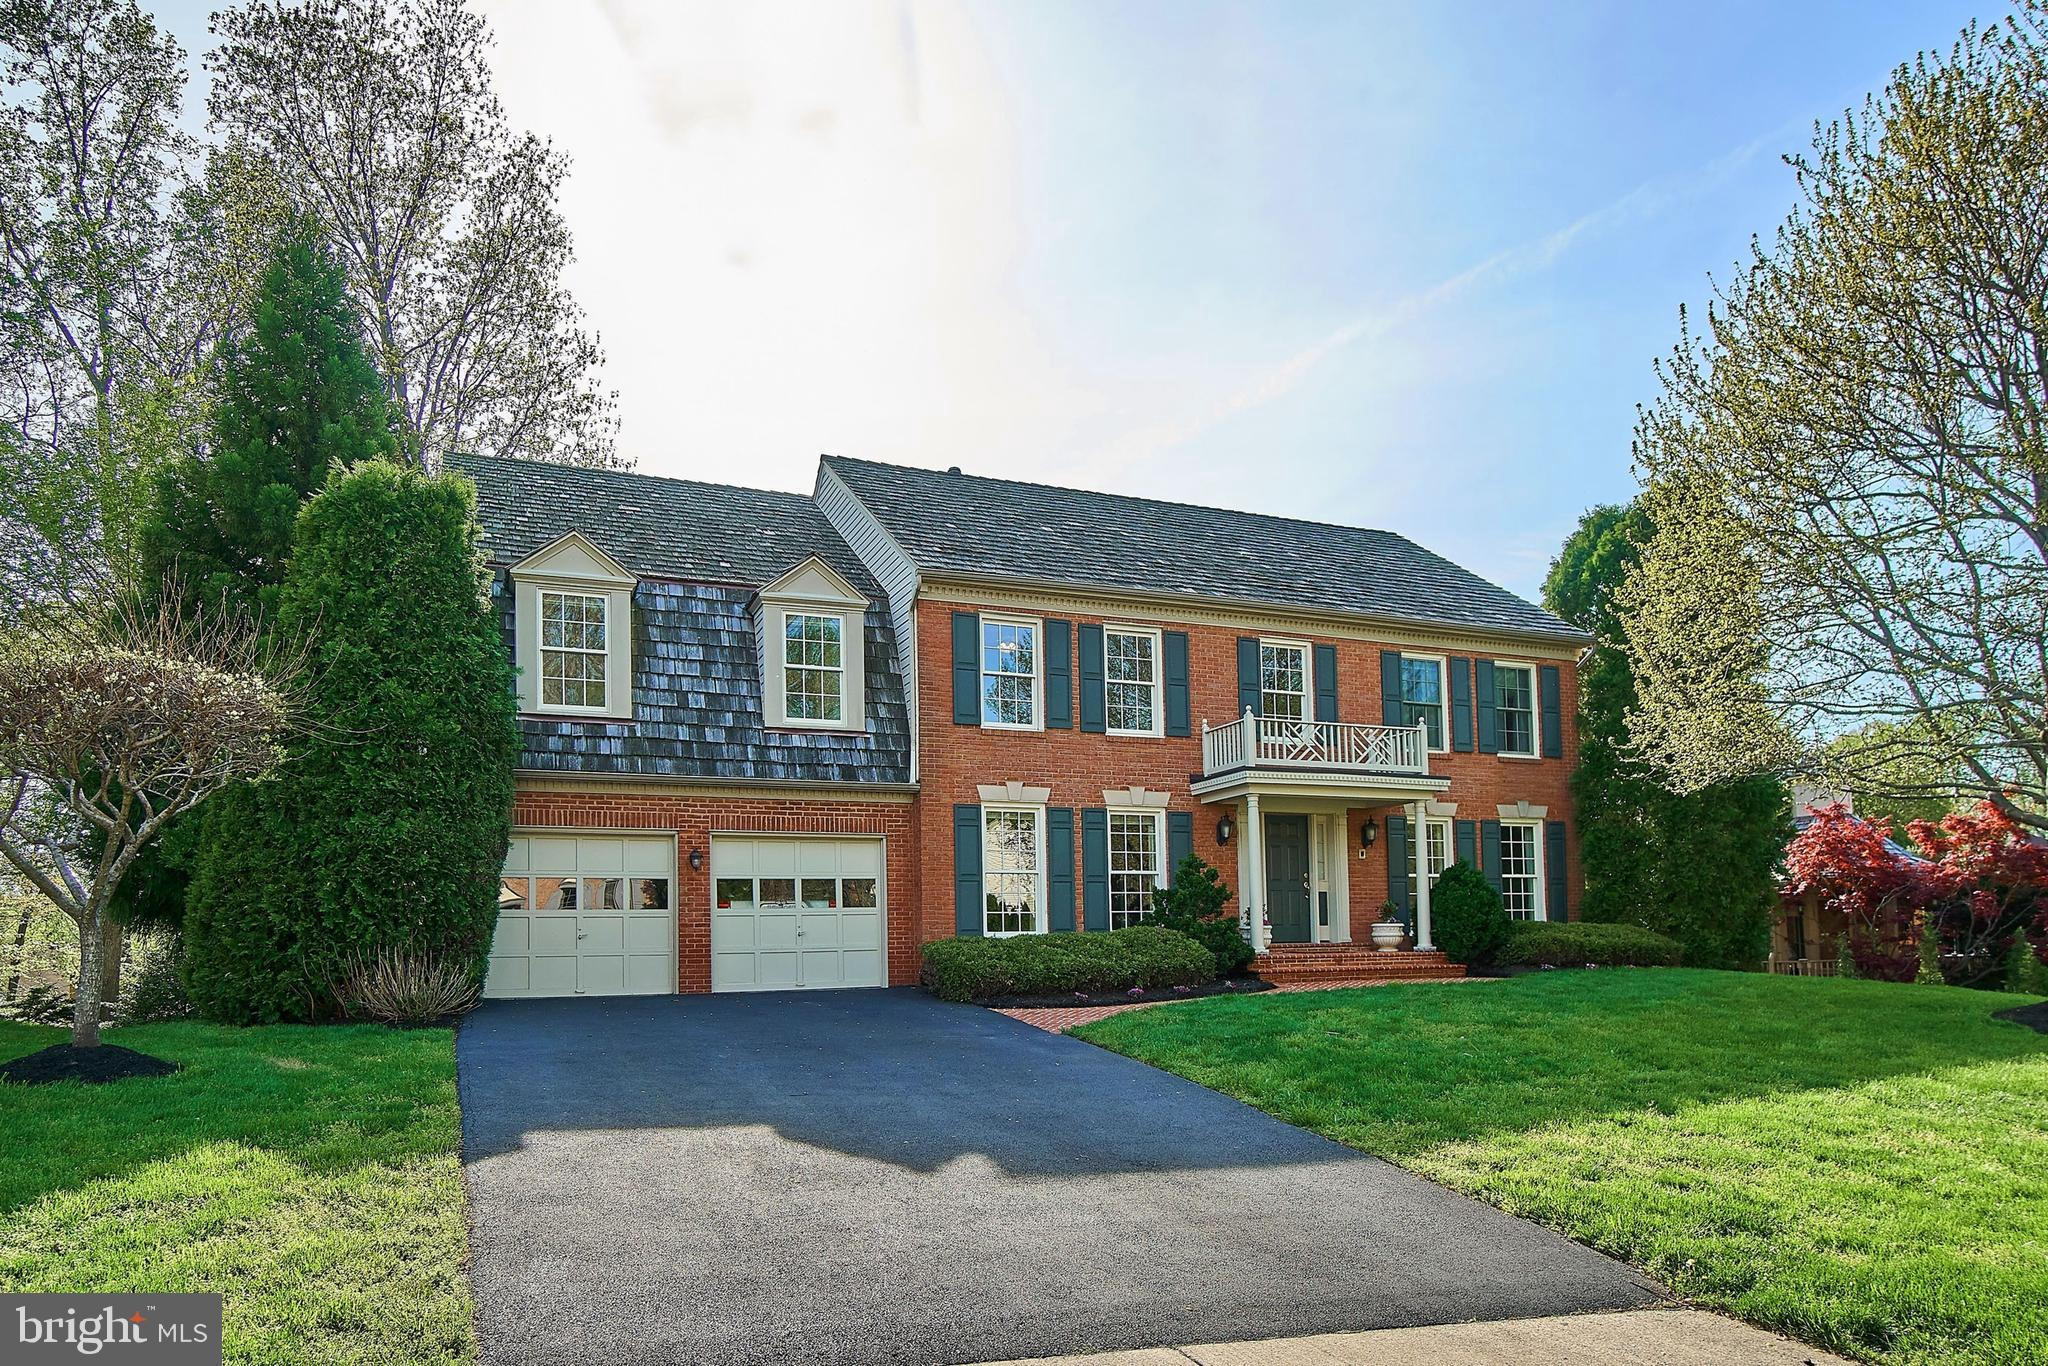 Gorgeous Updated Home Move In Ready!Hardwoods throughout upper two levels! 4 1/2Updated Baths including total Master BathRemodel! Updated Kitchen with Upscale Cabinetry,Granite Counters, Tile Backsplash and 8' Anderson sliding door from breakfast room to the huge DeckSurrounded by Trees! Bumped Out Family Room w/Vaulted Ceiling to the Overlook Upstairs!BeautifulCustom Built Ins in the Study/Library, Lower LevelPub Room, and Gorgeous Bar/Kitchenette in LowerLevel. 5 Spacious Bedrooms, 4 1/2 RemodeledBaths! Finished Walk Out Lower Level. Move Right in and start Enjoying this Wonderful Neighborhood!